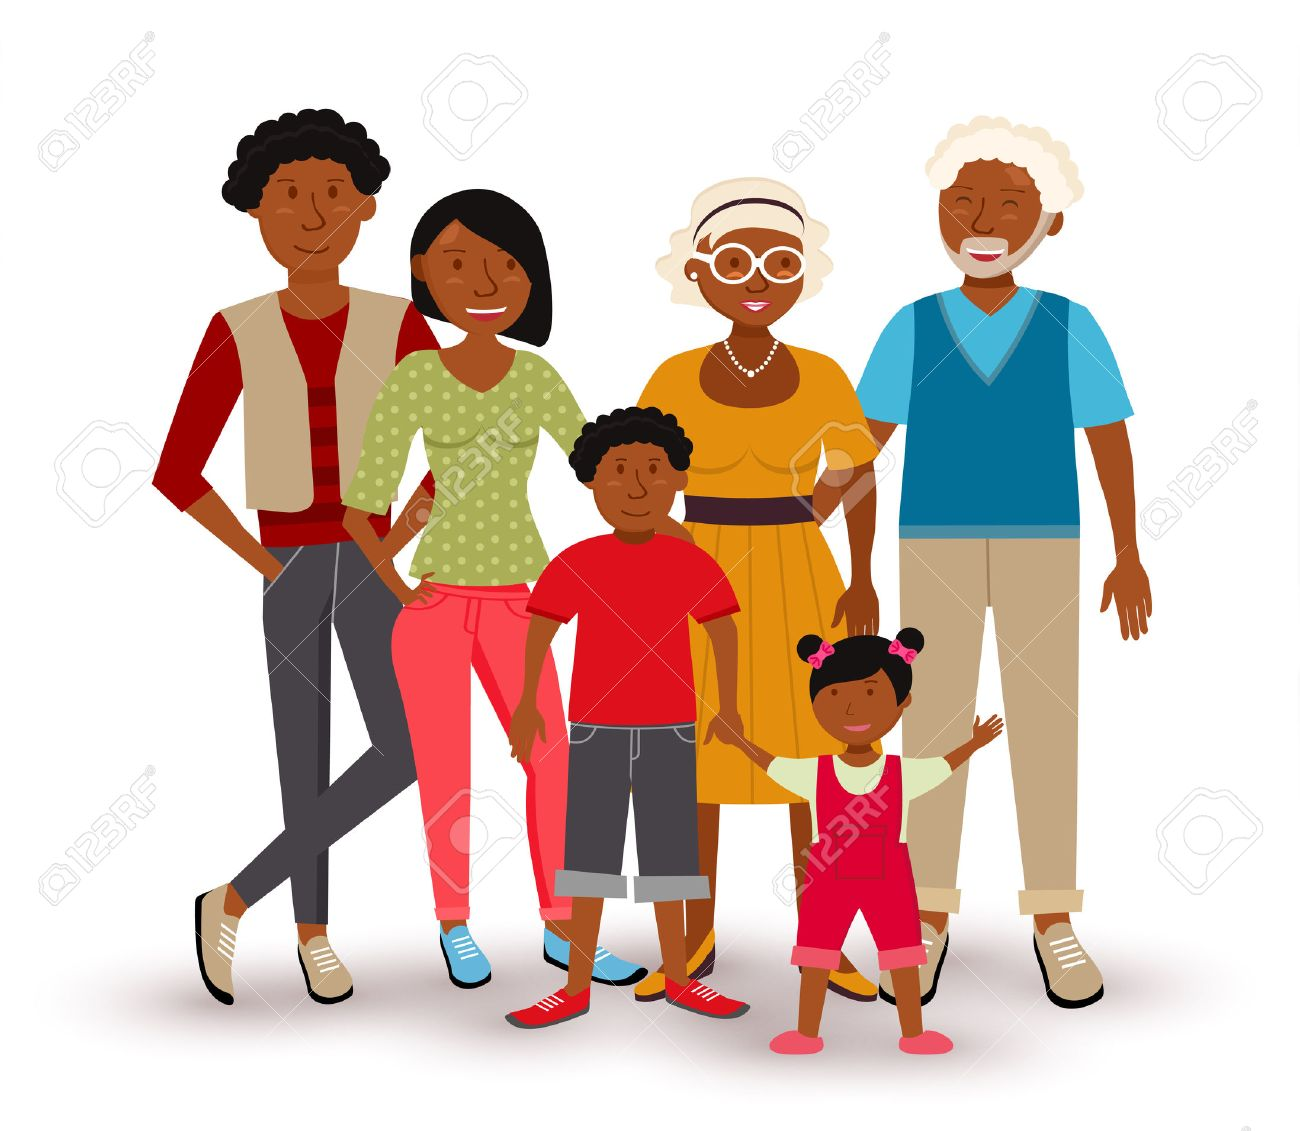 hight resolution of people collection happy multi generation family group with dad mom children and grandparents